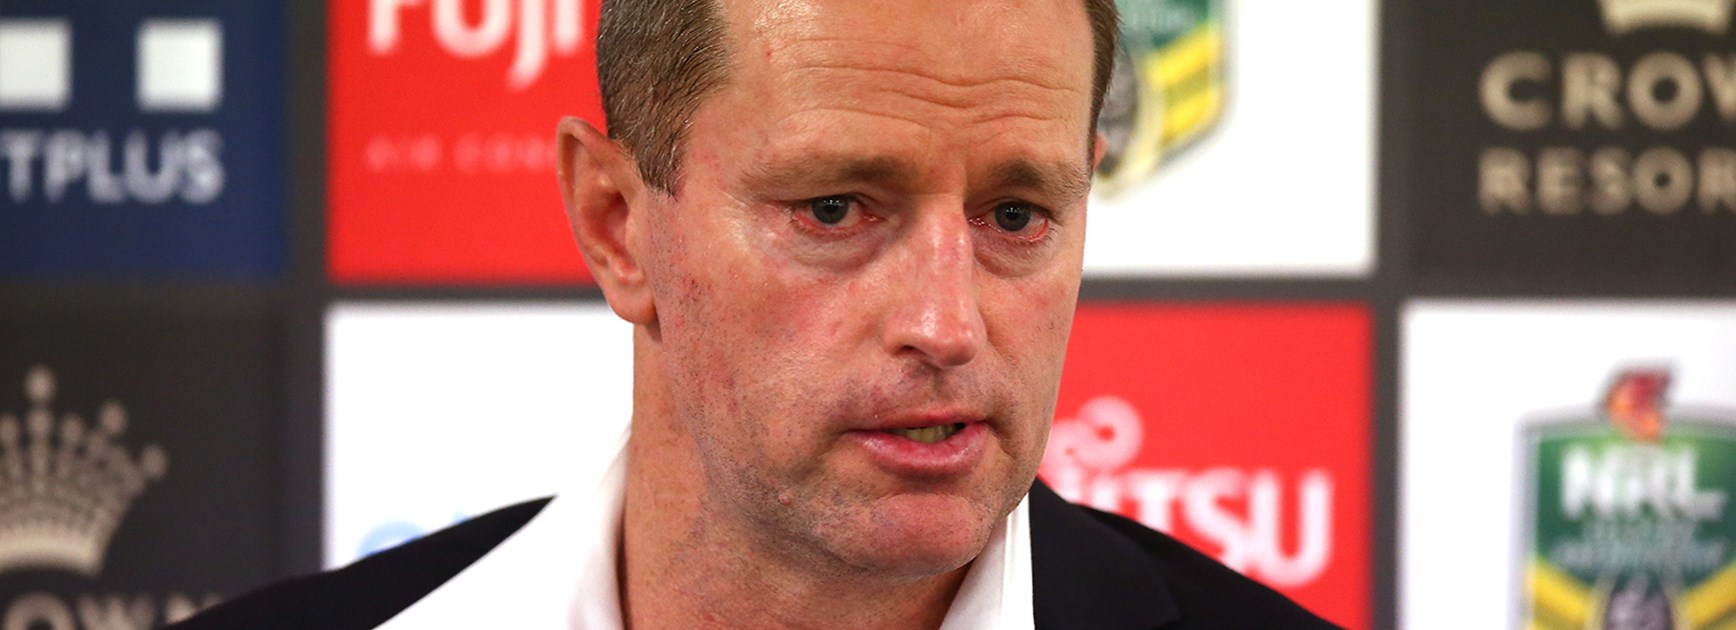 Rabbitohs coach Michael Maguire after his side's Round 6 loss to the Roosters.